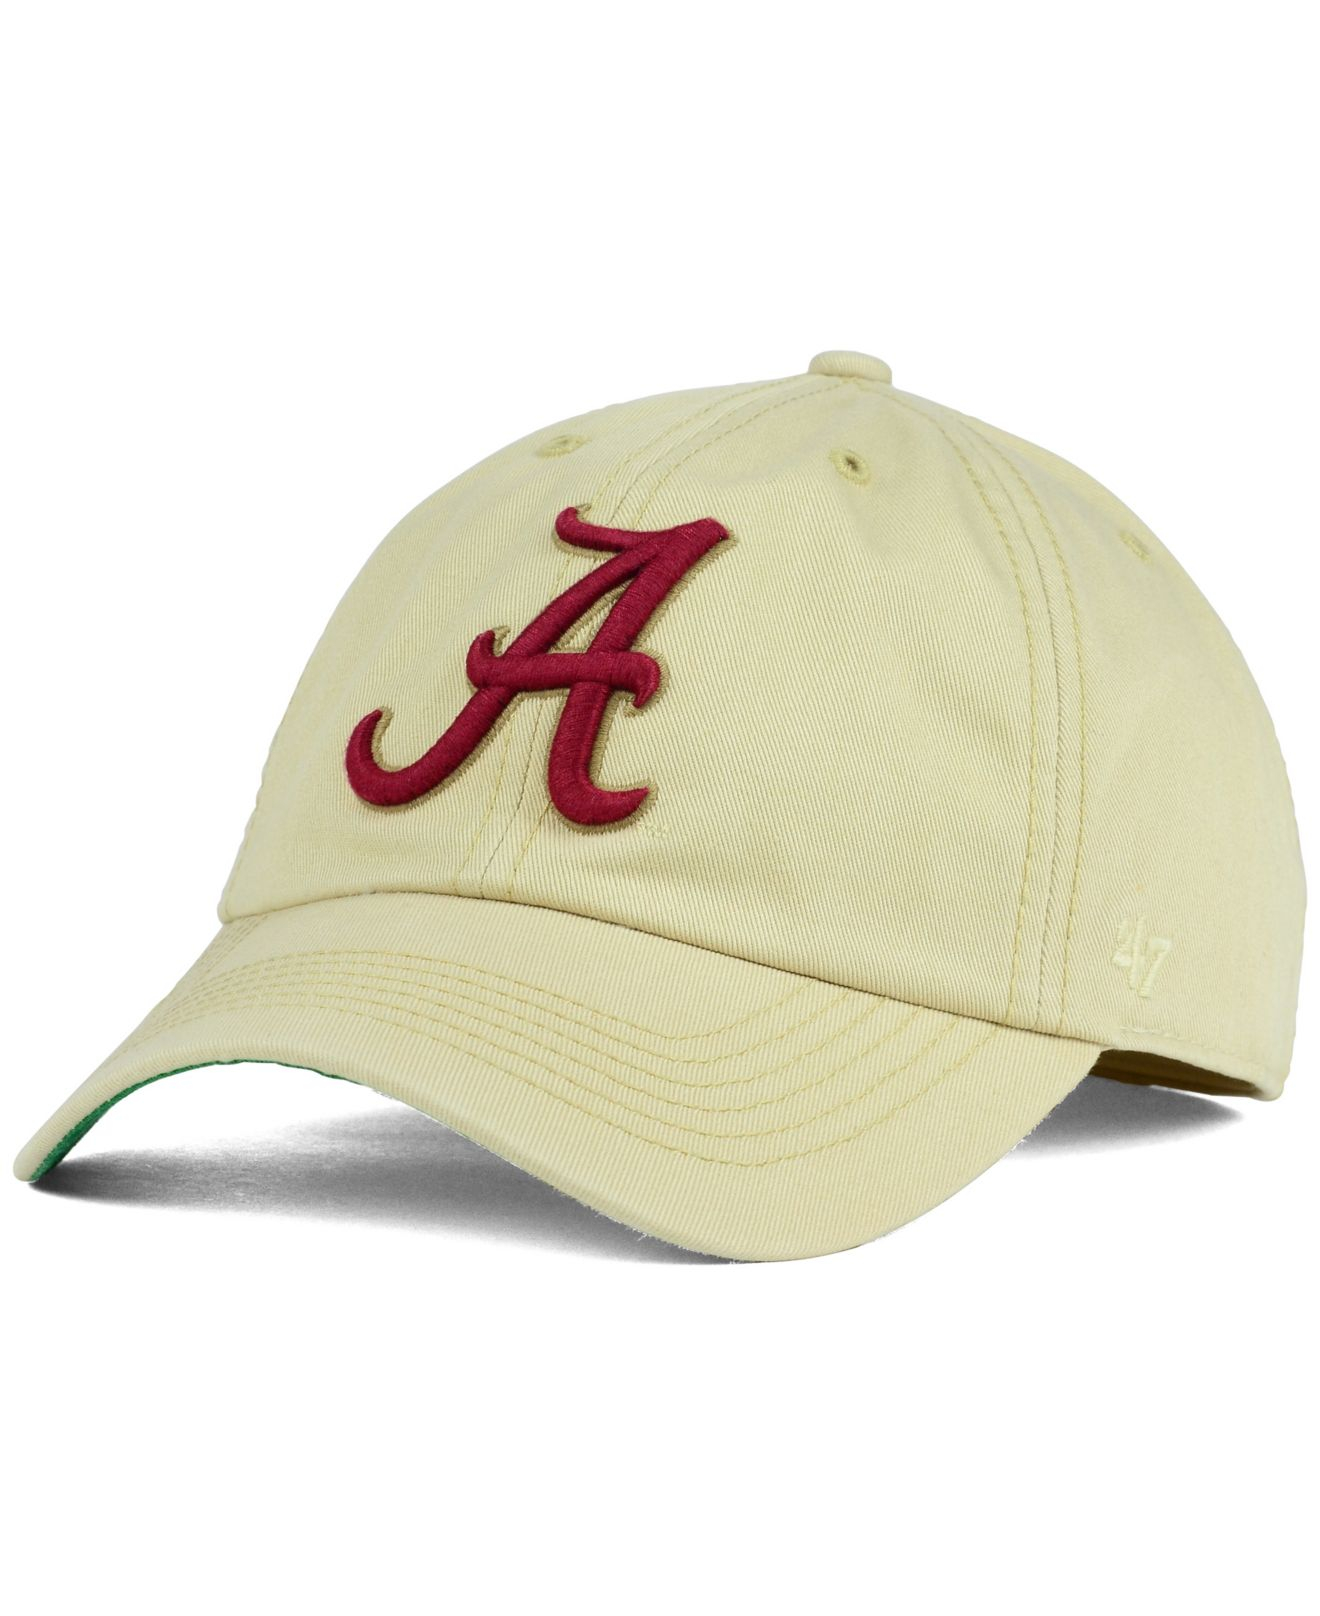 8beb6a74067 ... australia stanford cardinal 47 brand ncaa sahara lawrence 47 franchise  cap natural hsc572208 lyst 47 brand